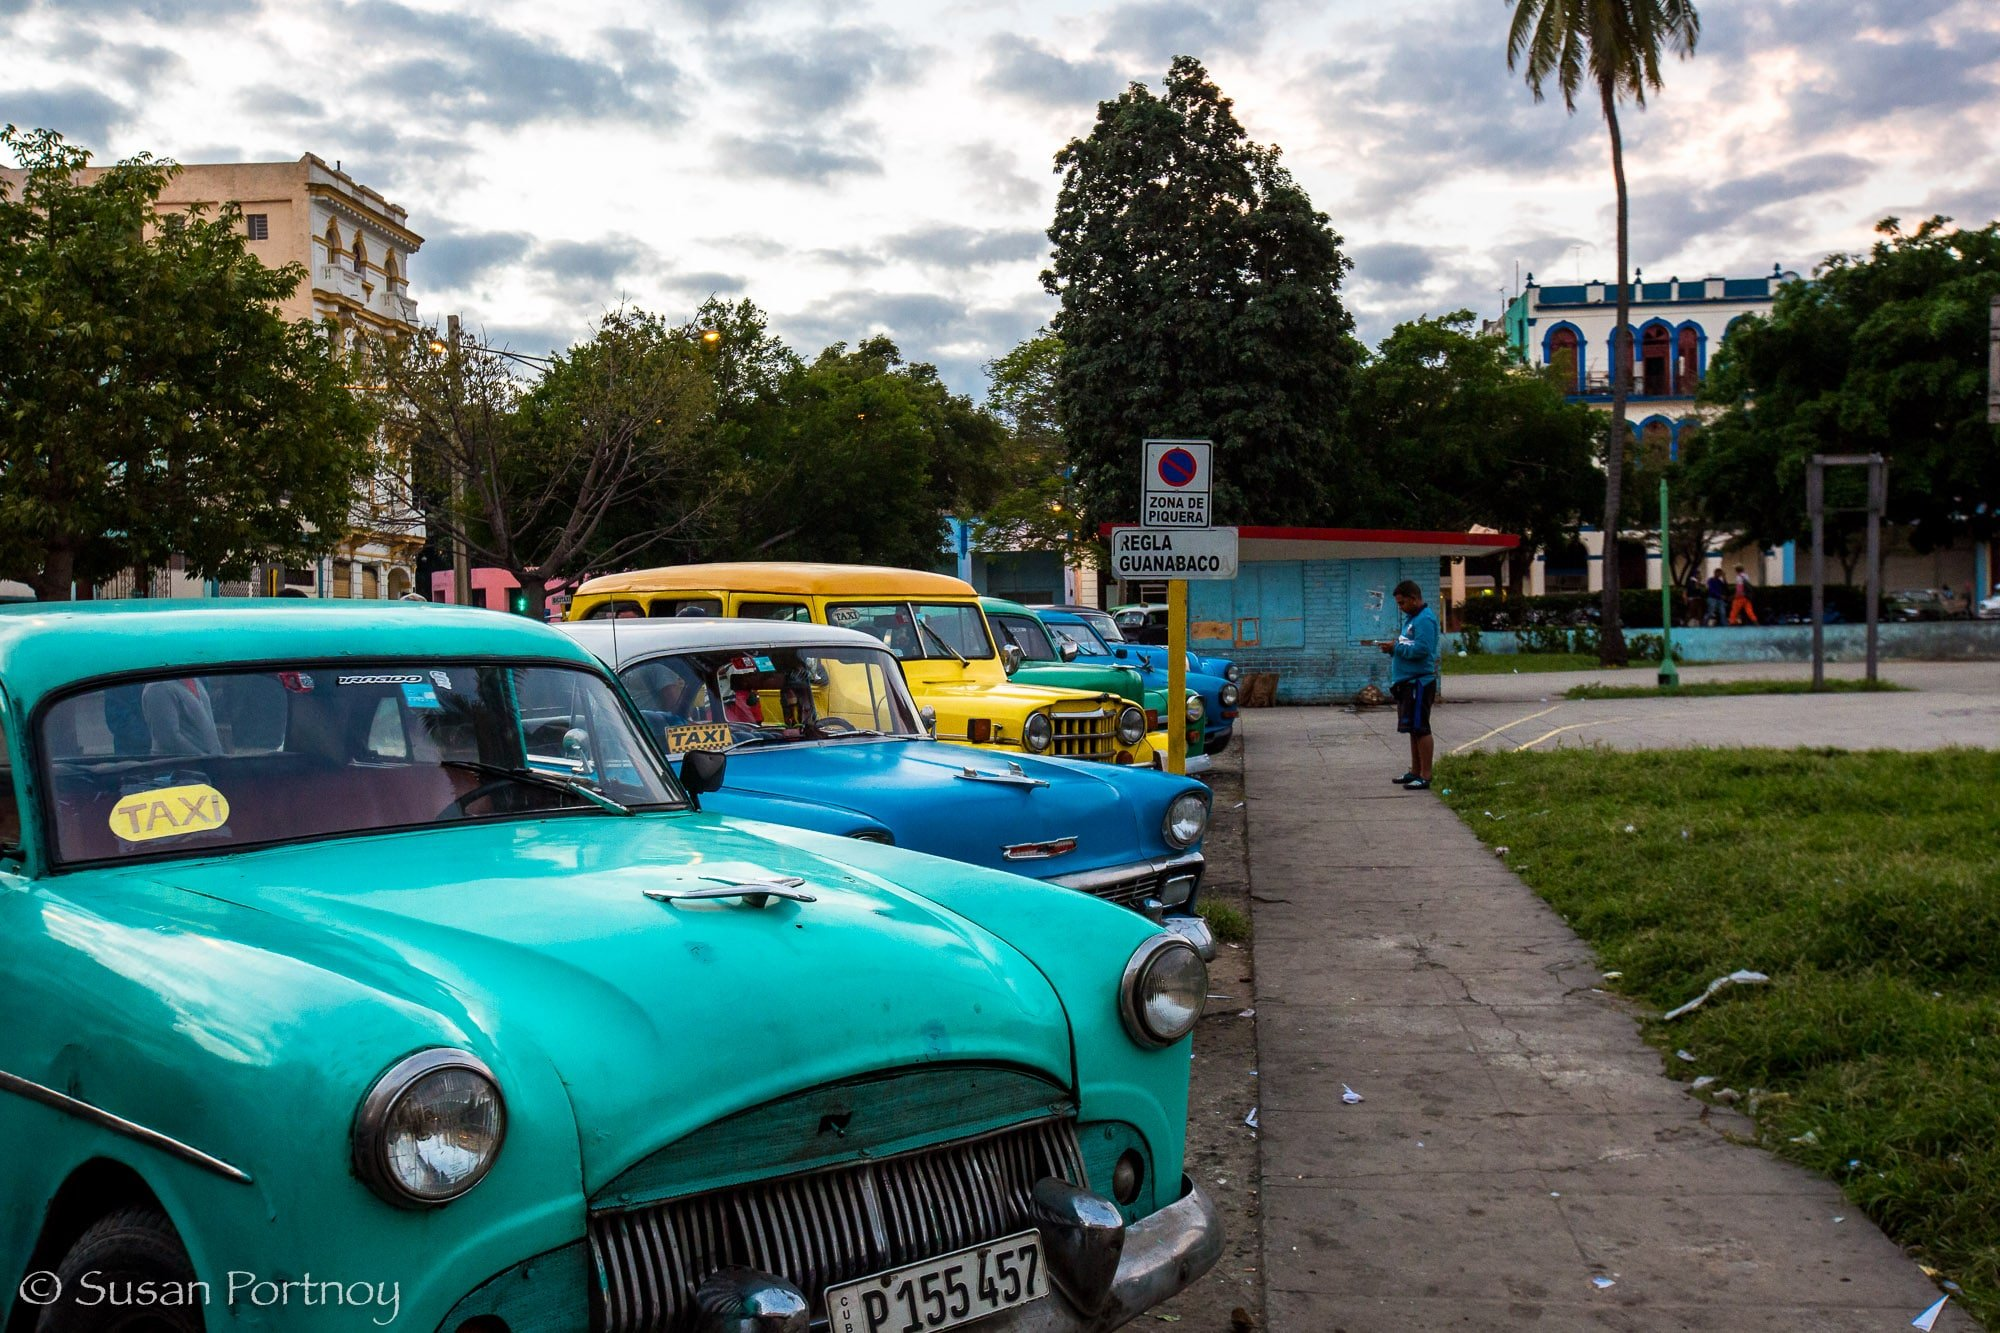 Line up of colorful parked classic cars in Havana, Cuba